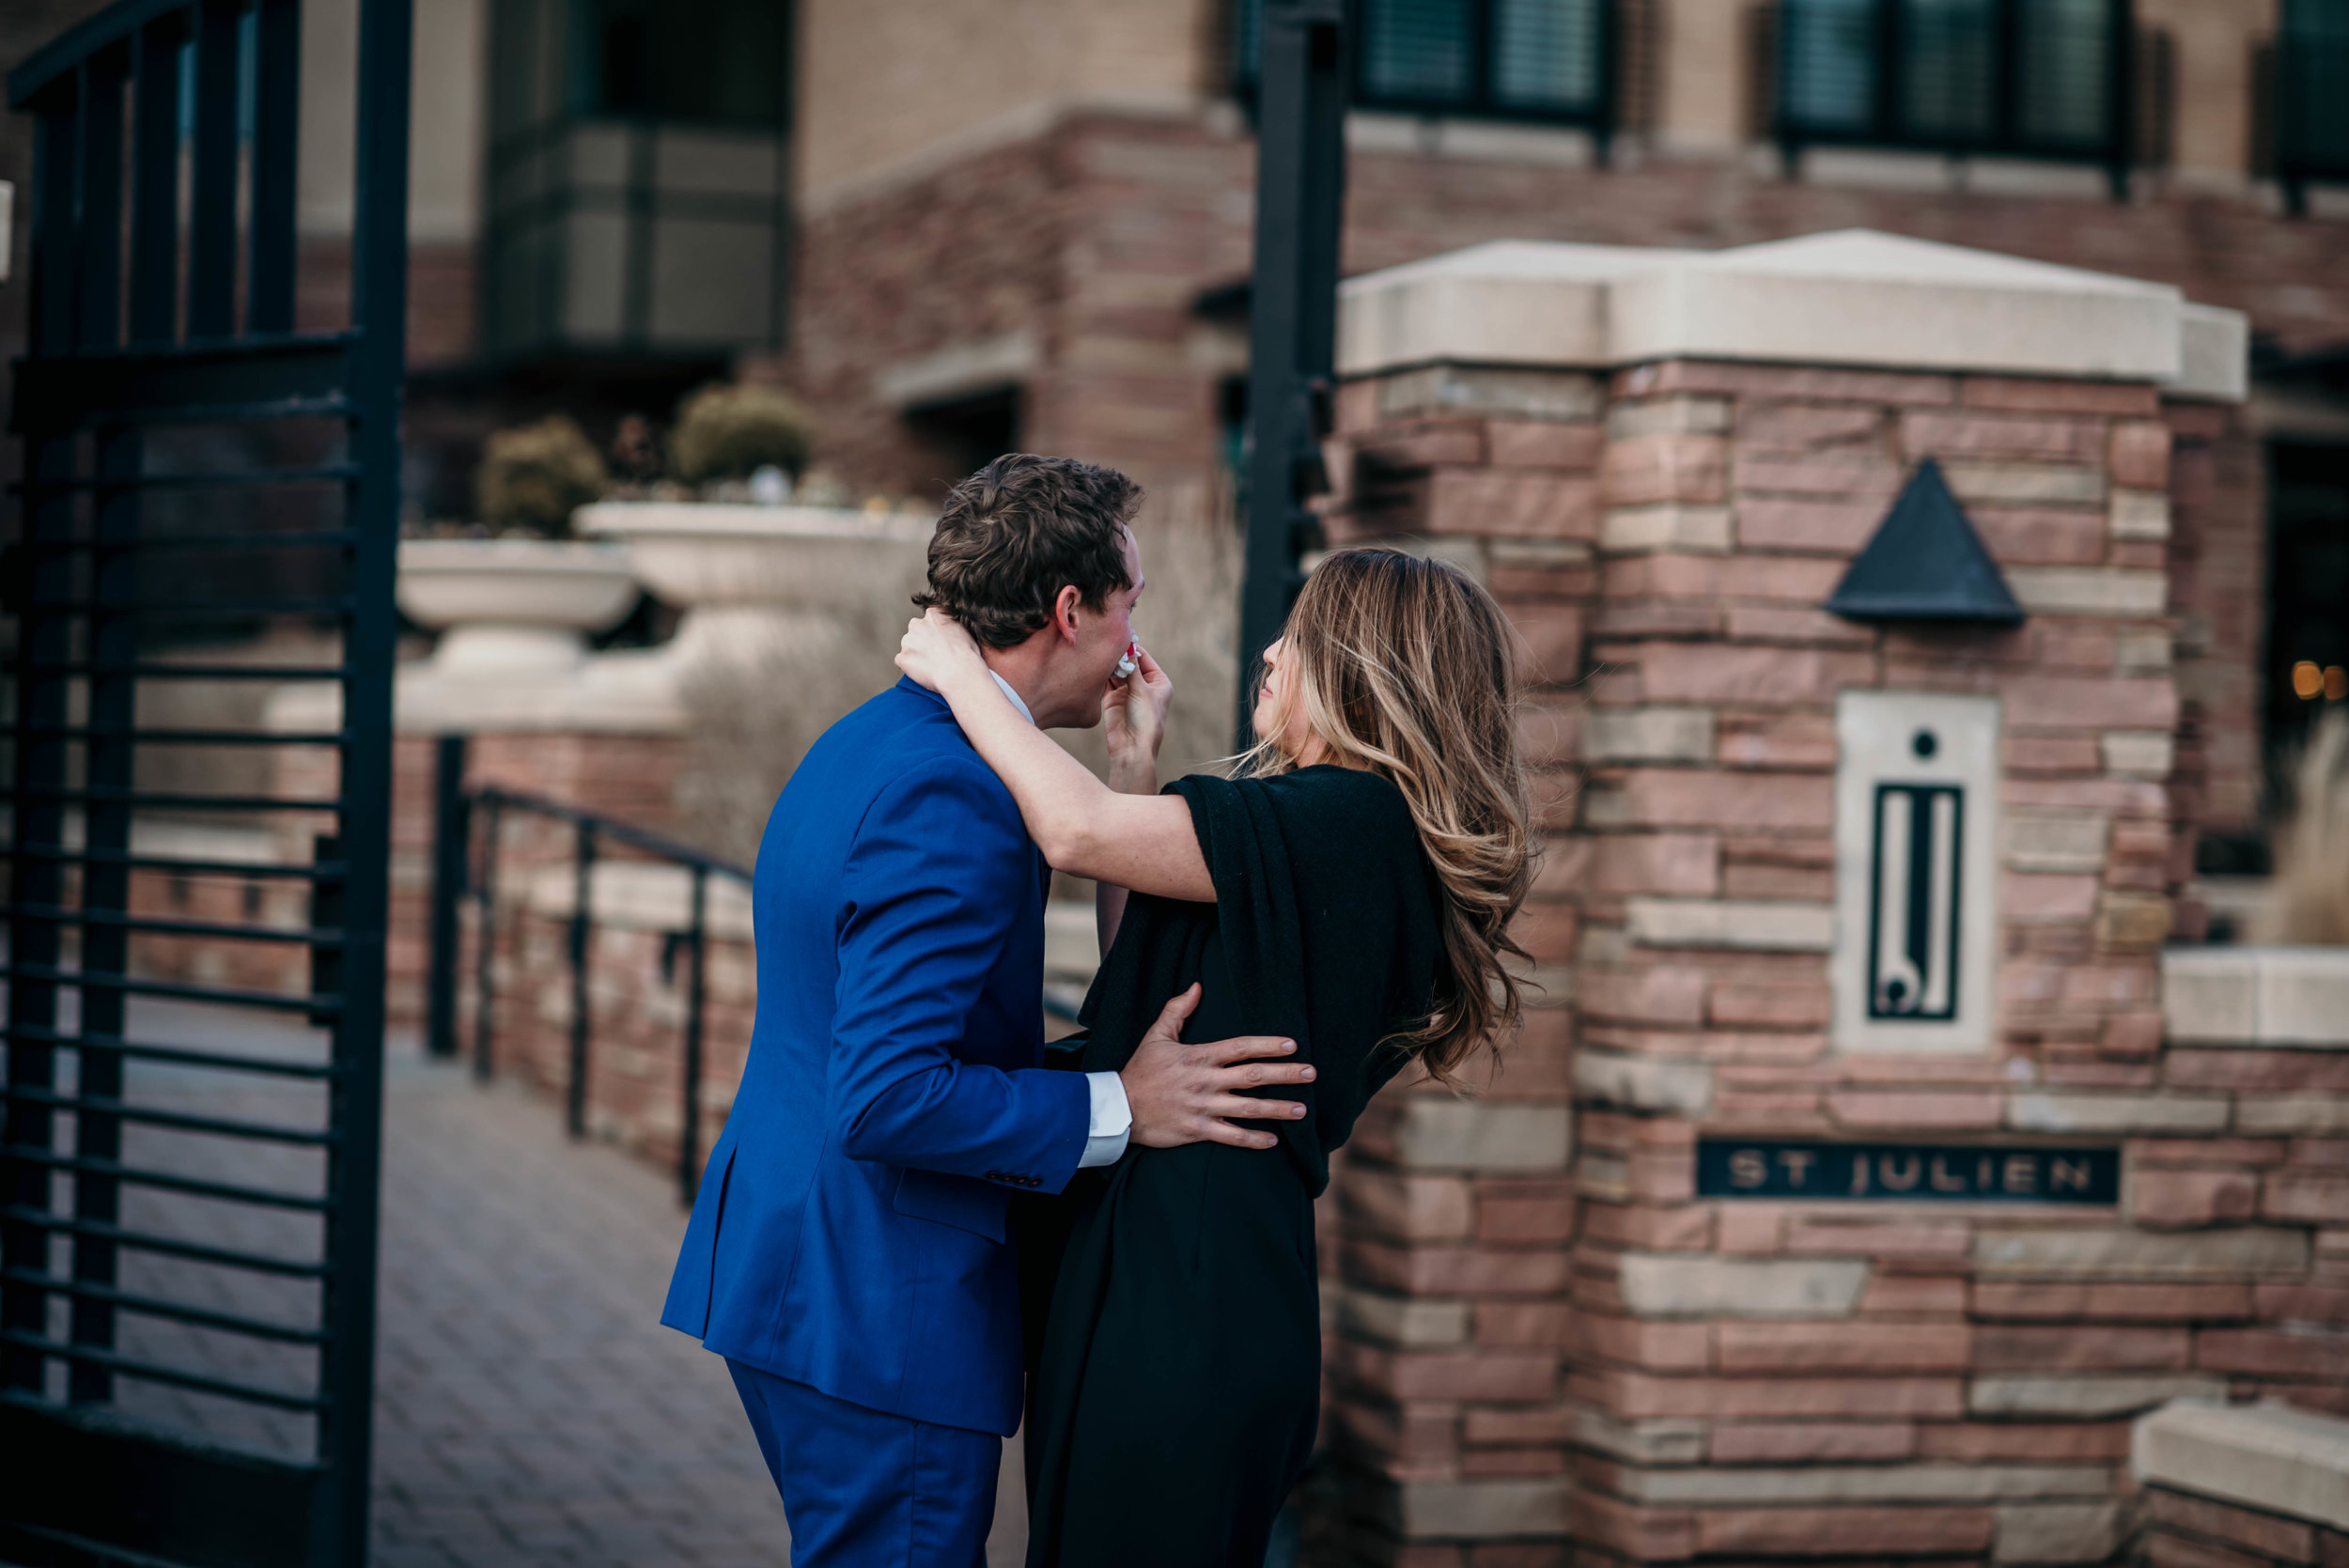 colorado_proposal_photographer_0340.jpg